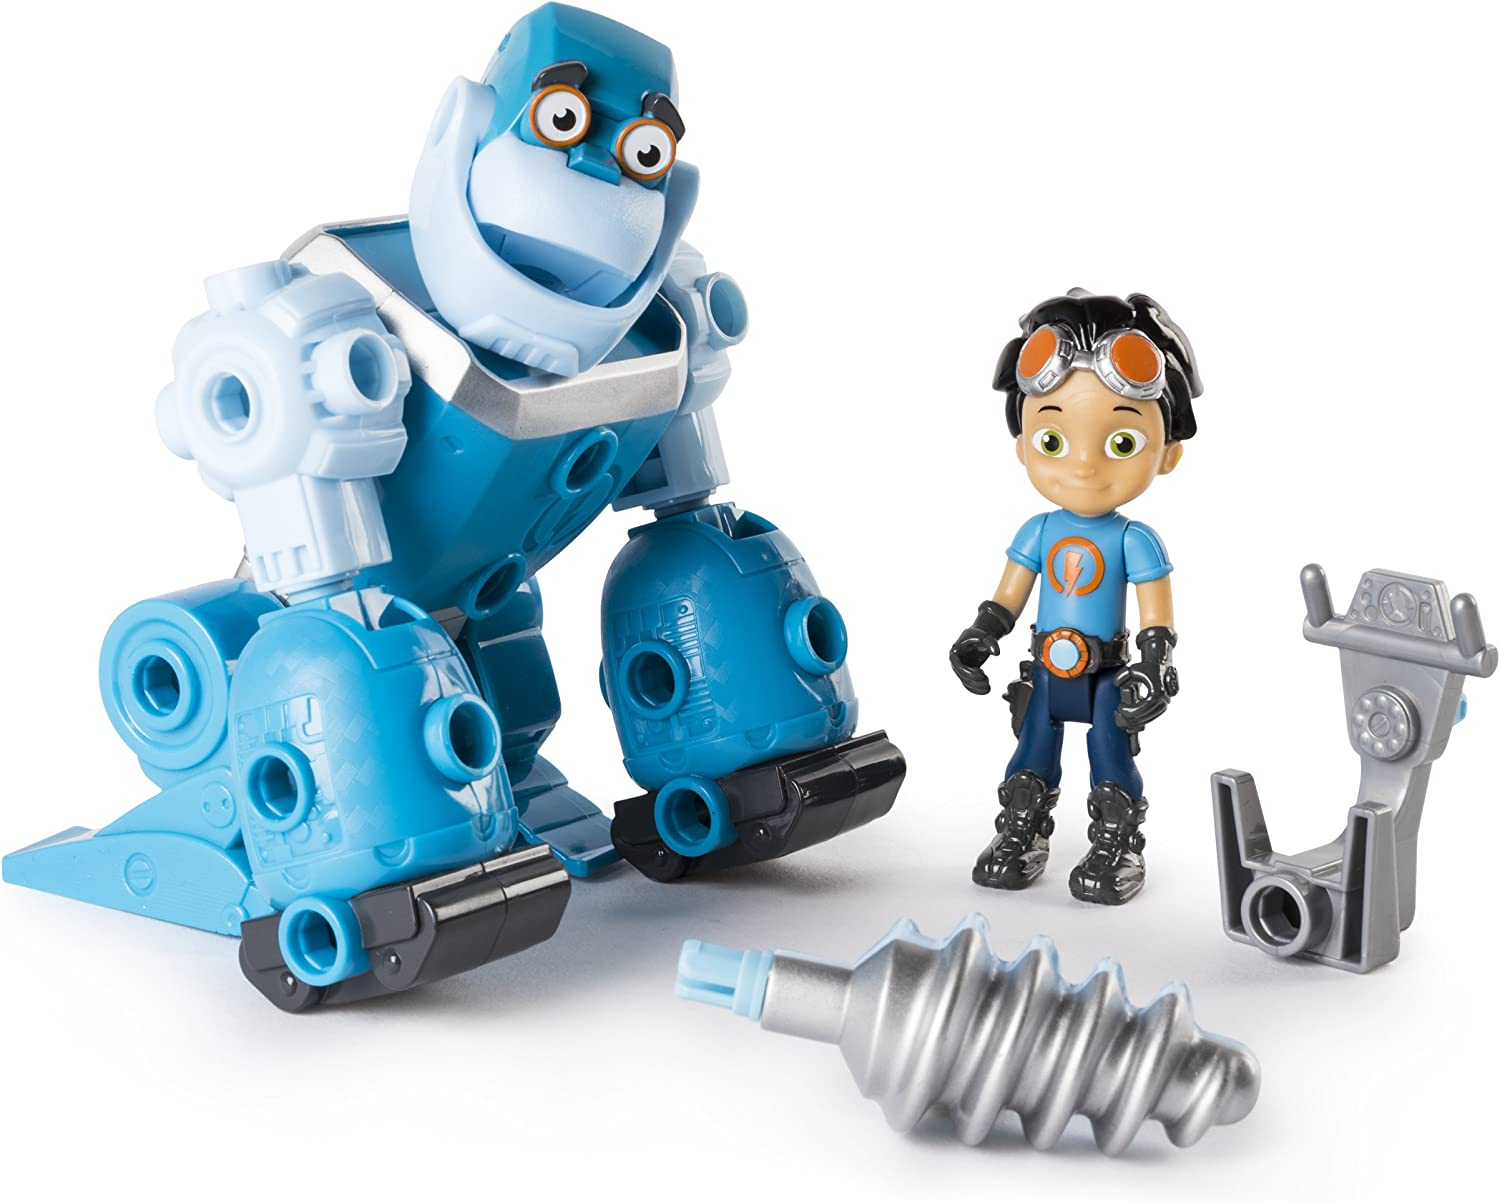 Rusty Rivets – Botarilla Creature Build with Rusty Figure, for Ages 3 and Up